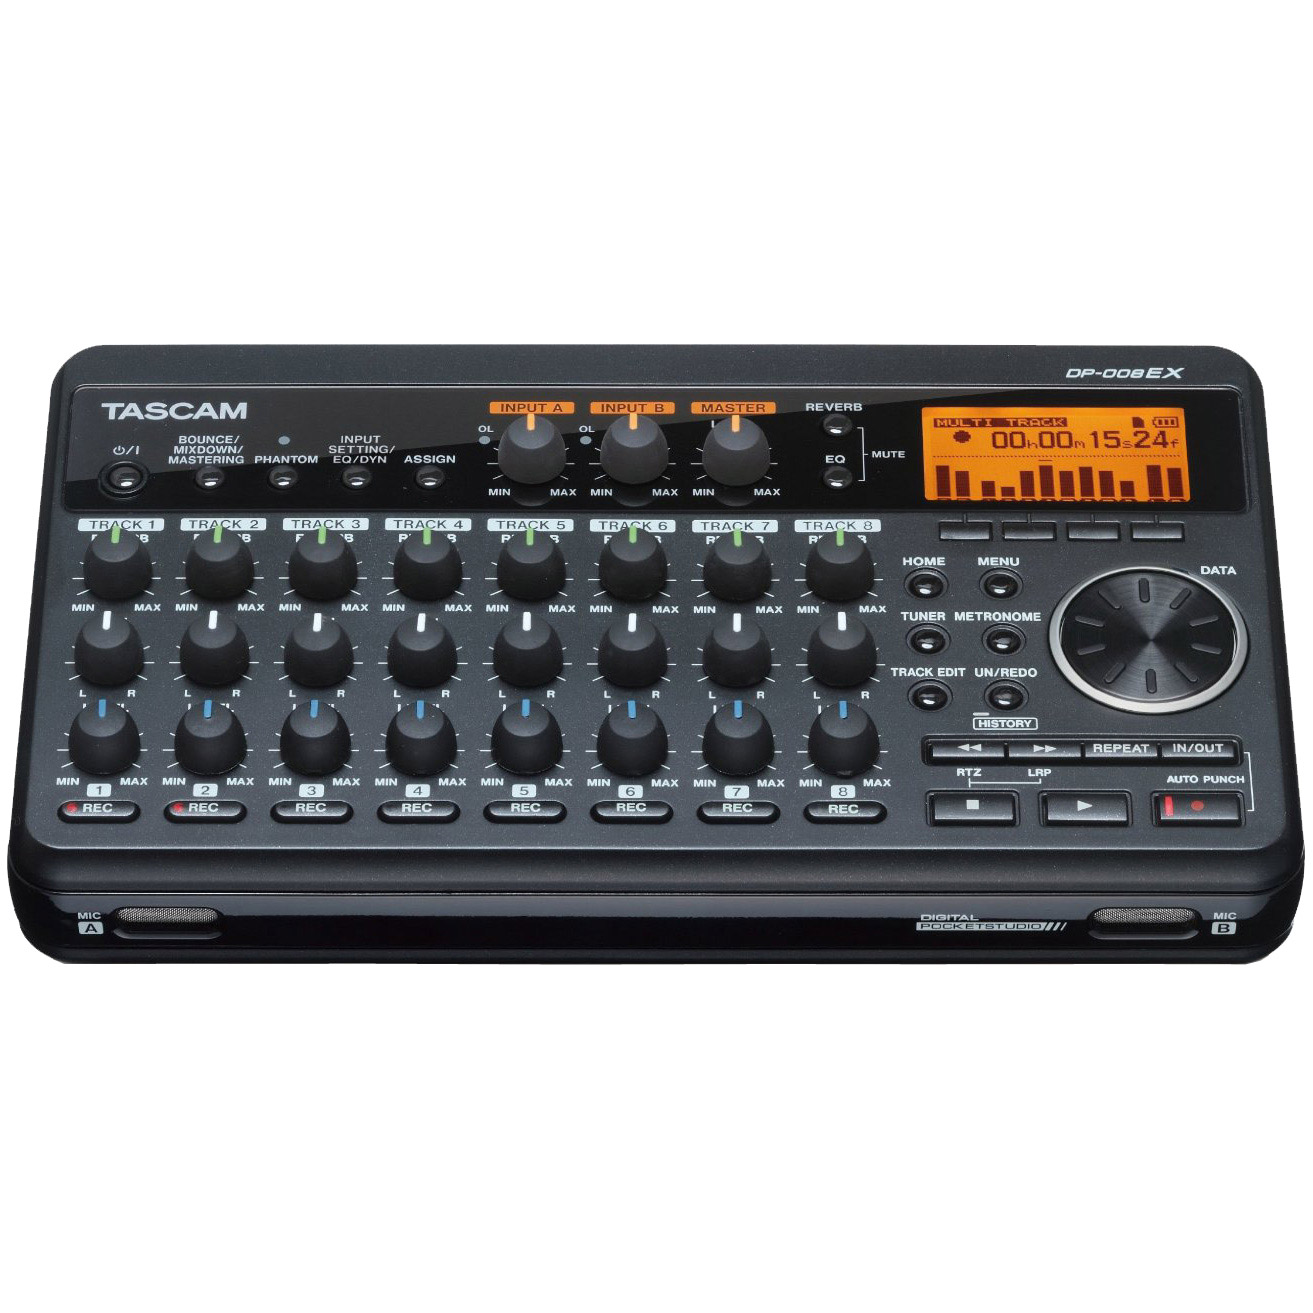 Tascam Compact Portastudio 8 Track Digital Recorder w/ Built In Microphone